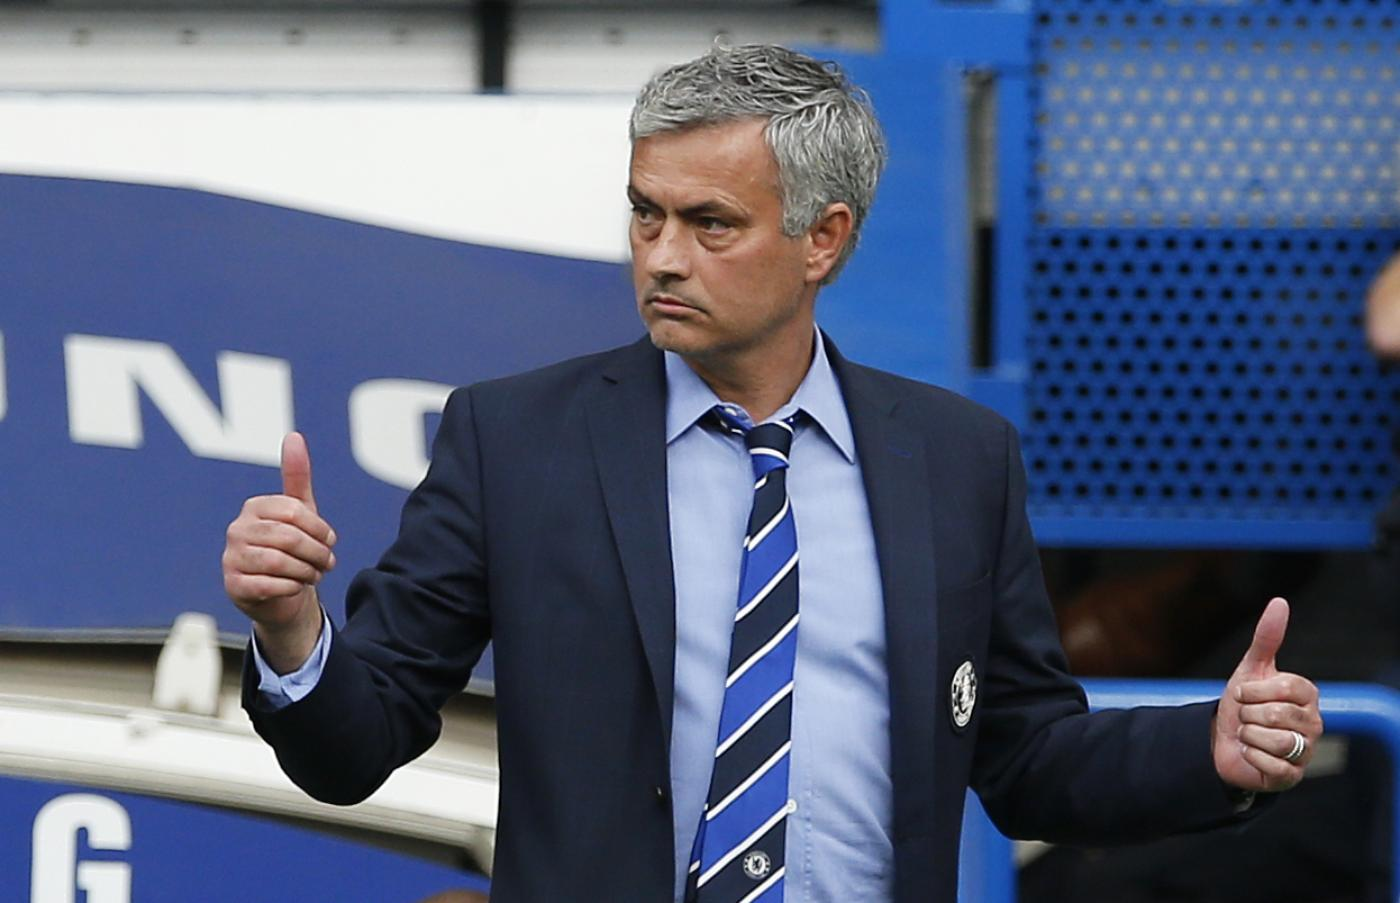 Go for it! This Chelsea line-up can give Liverpool a real thrashing